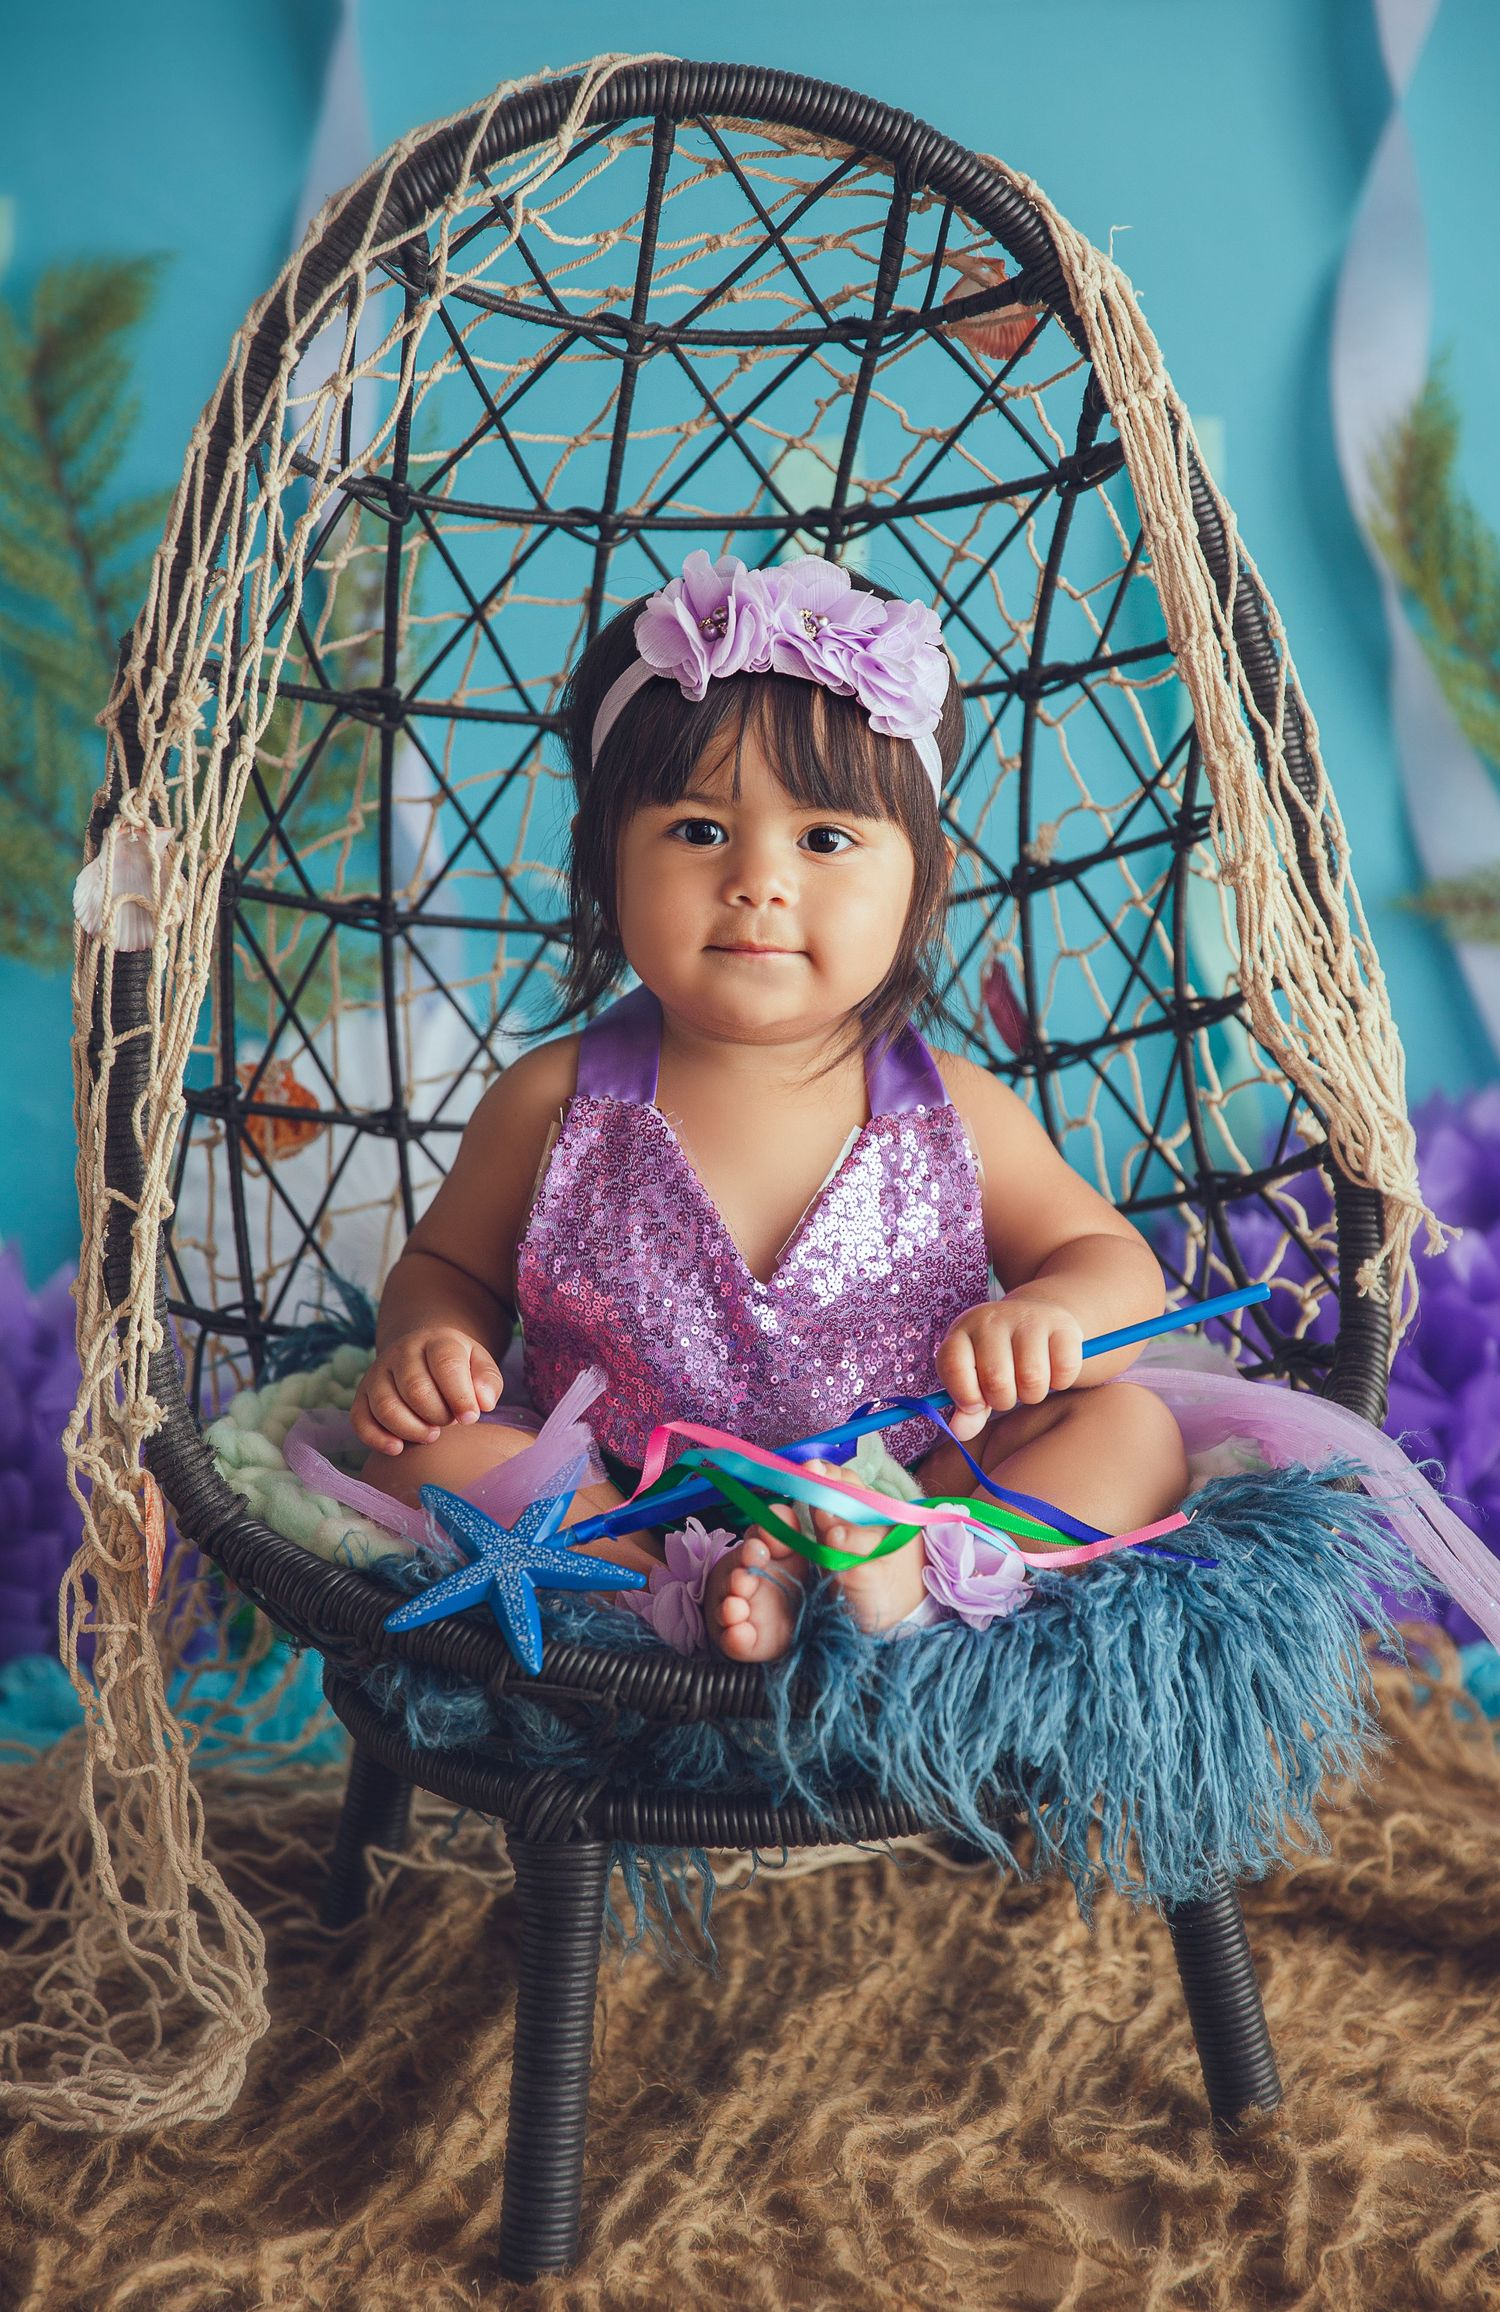 baby girl in mermaid clothing holding wand